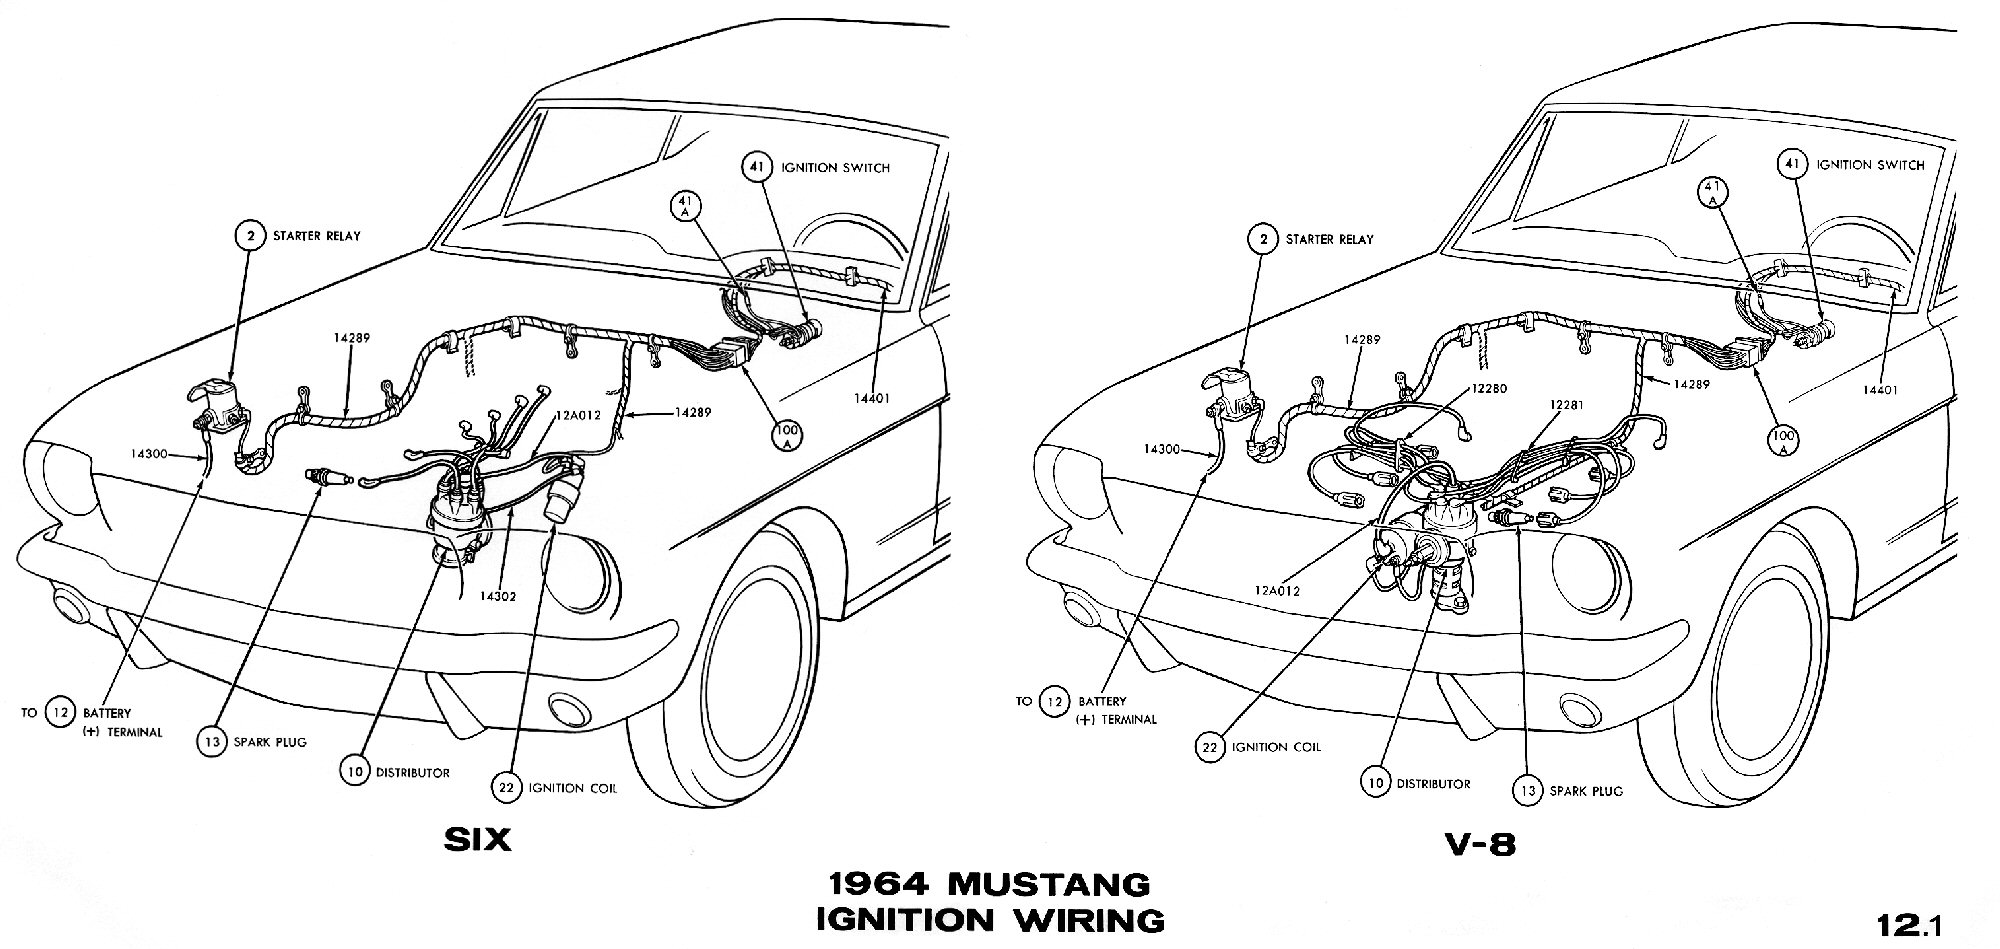 1964 Mustang Wiring Diagrams Average Joe Restoration Ford Ignition 1971 Sm1964c Pictorial